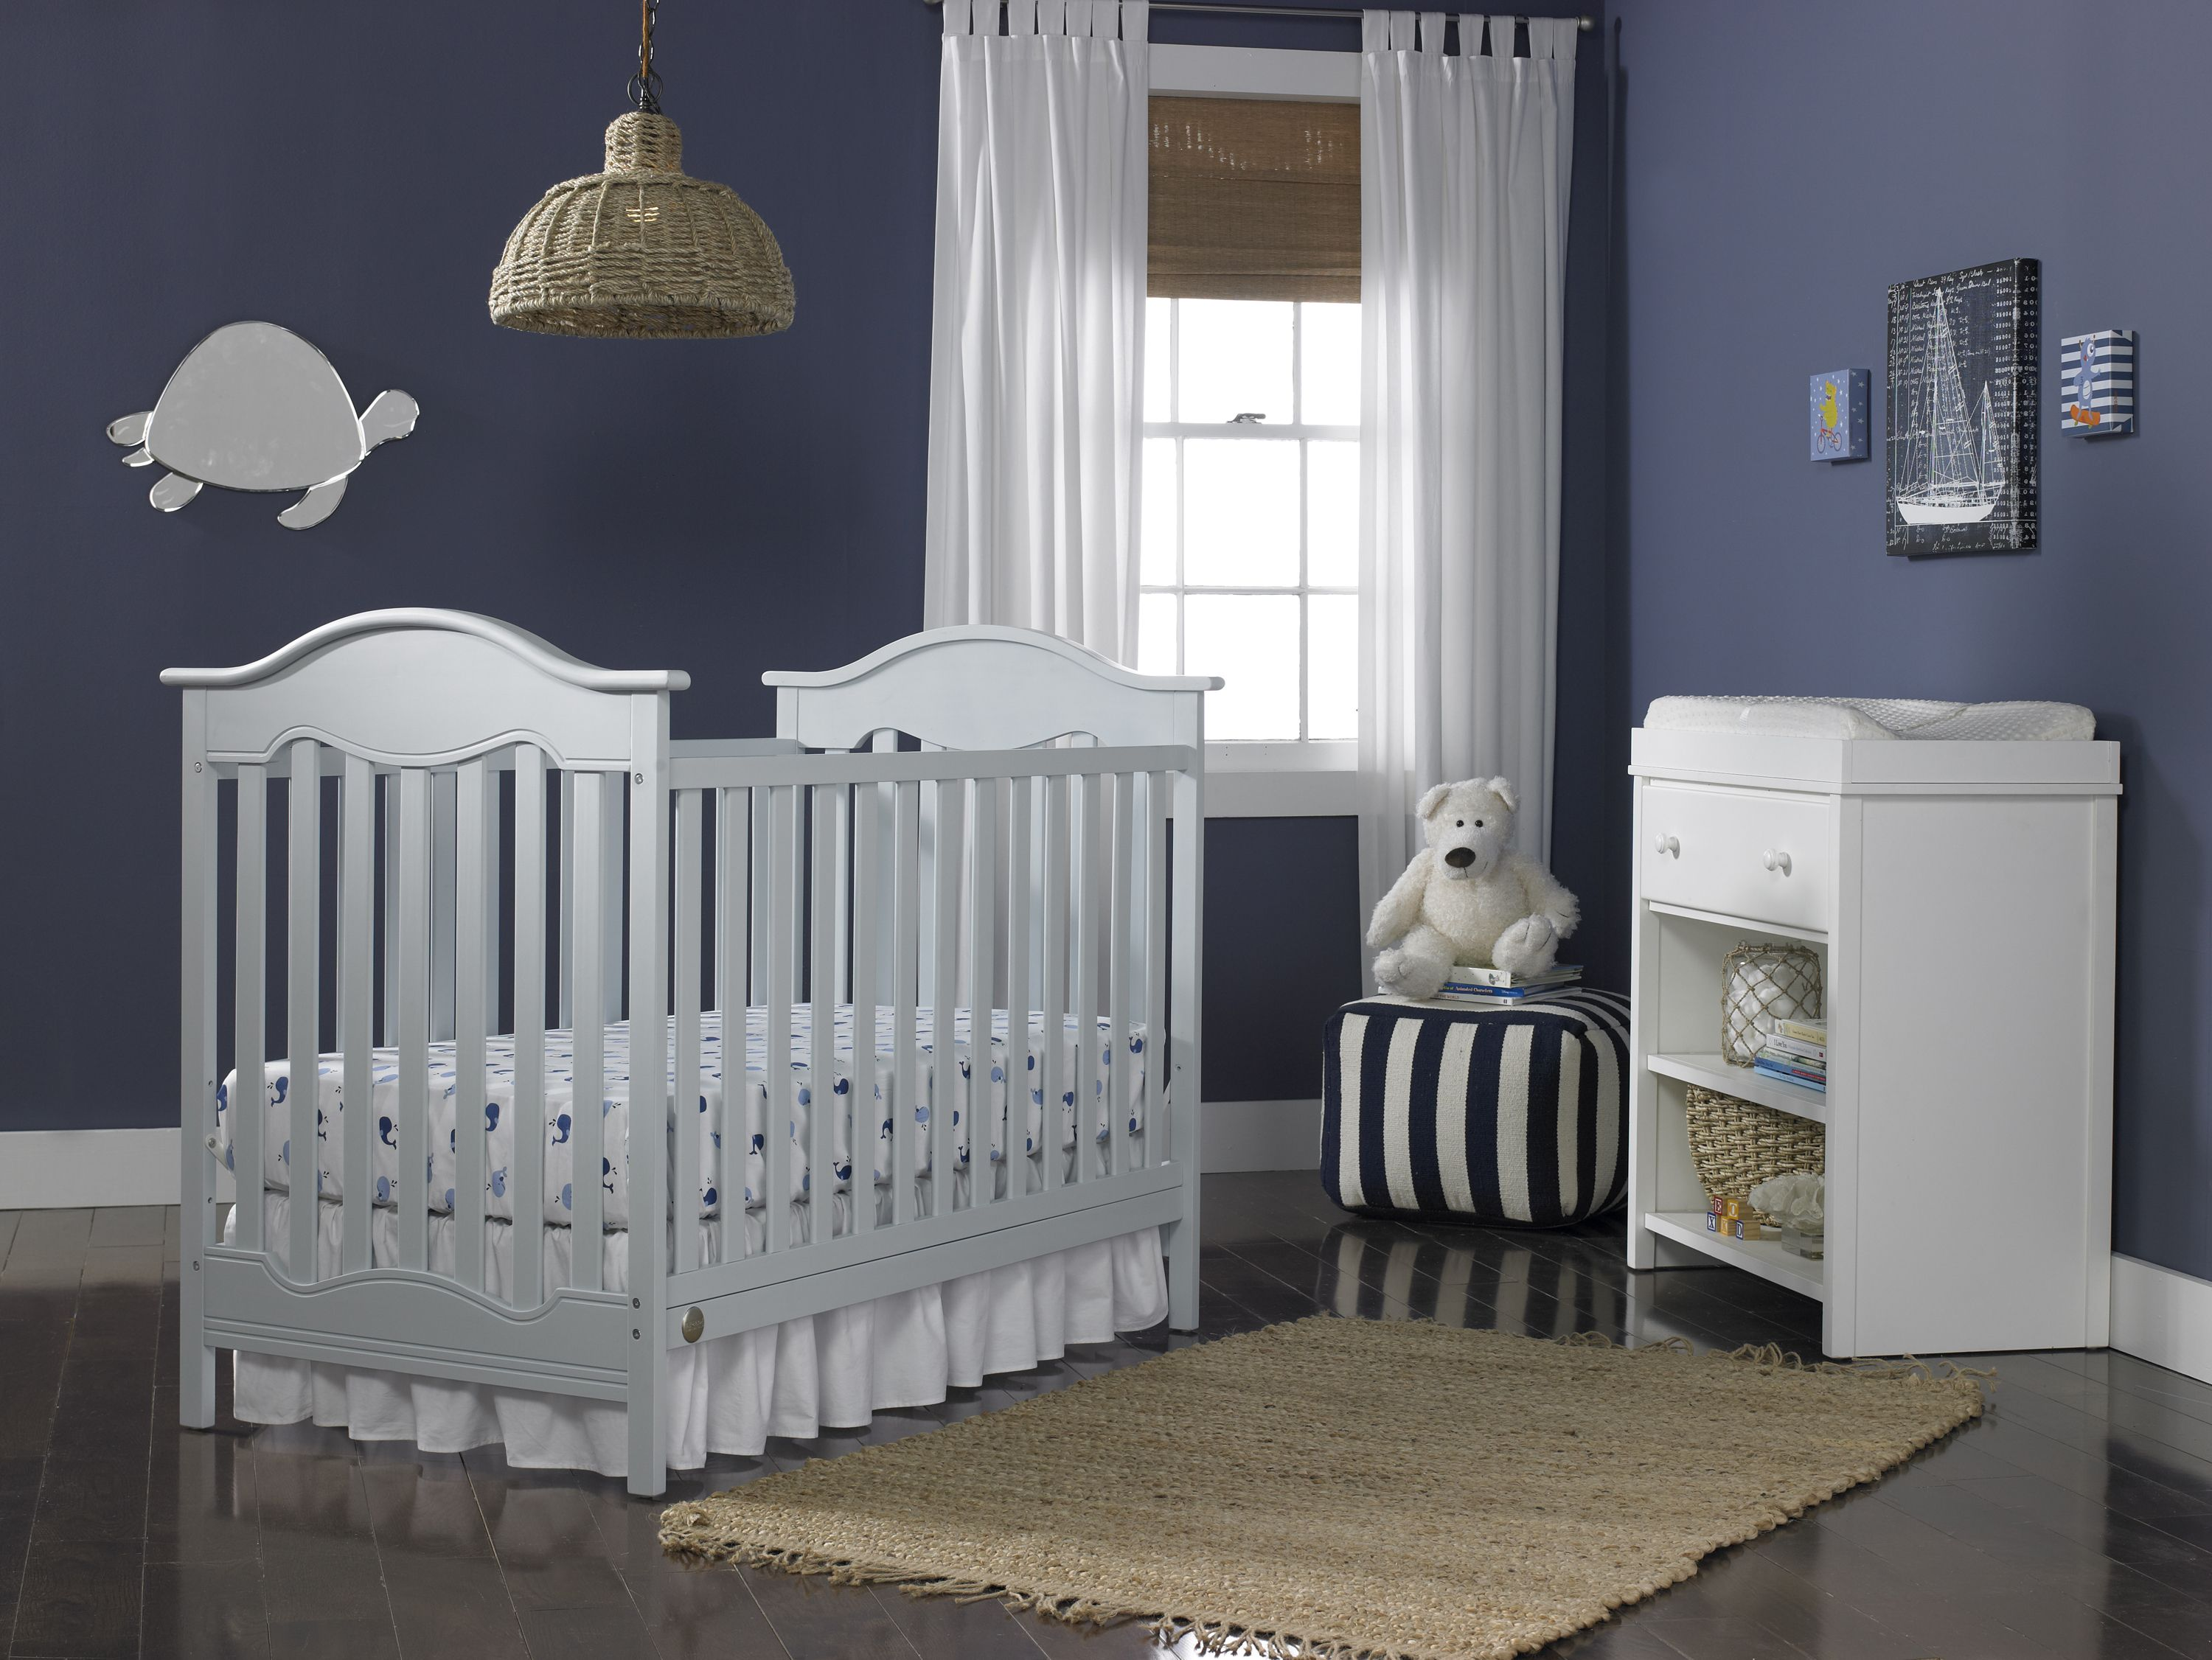 Fisher Price Charlotte Crib In Powder Blue Available At Walmart Com